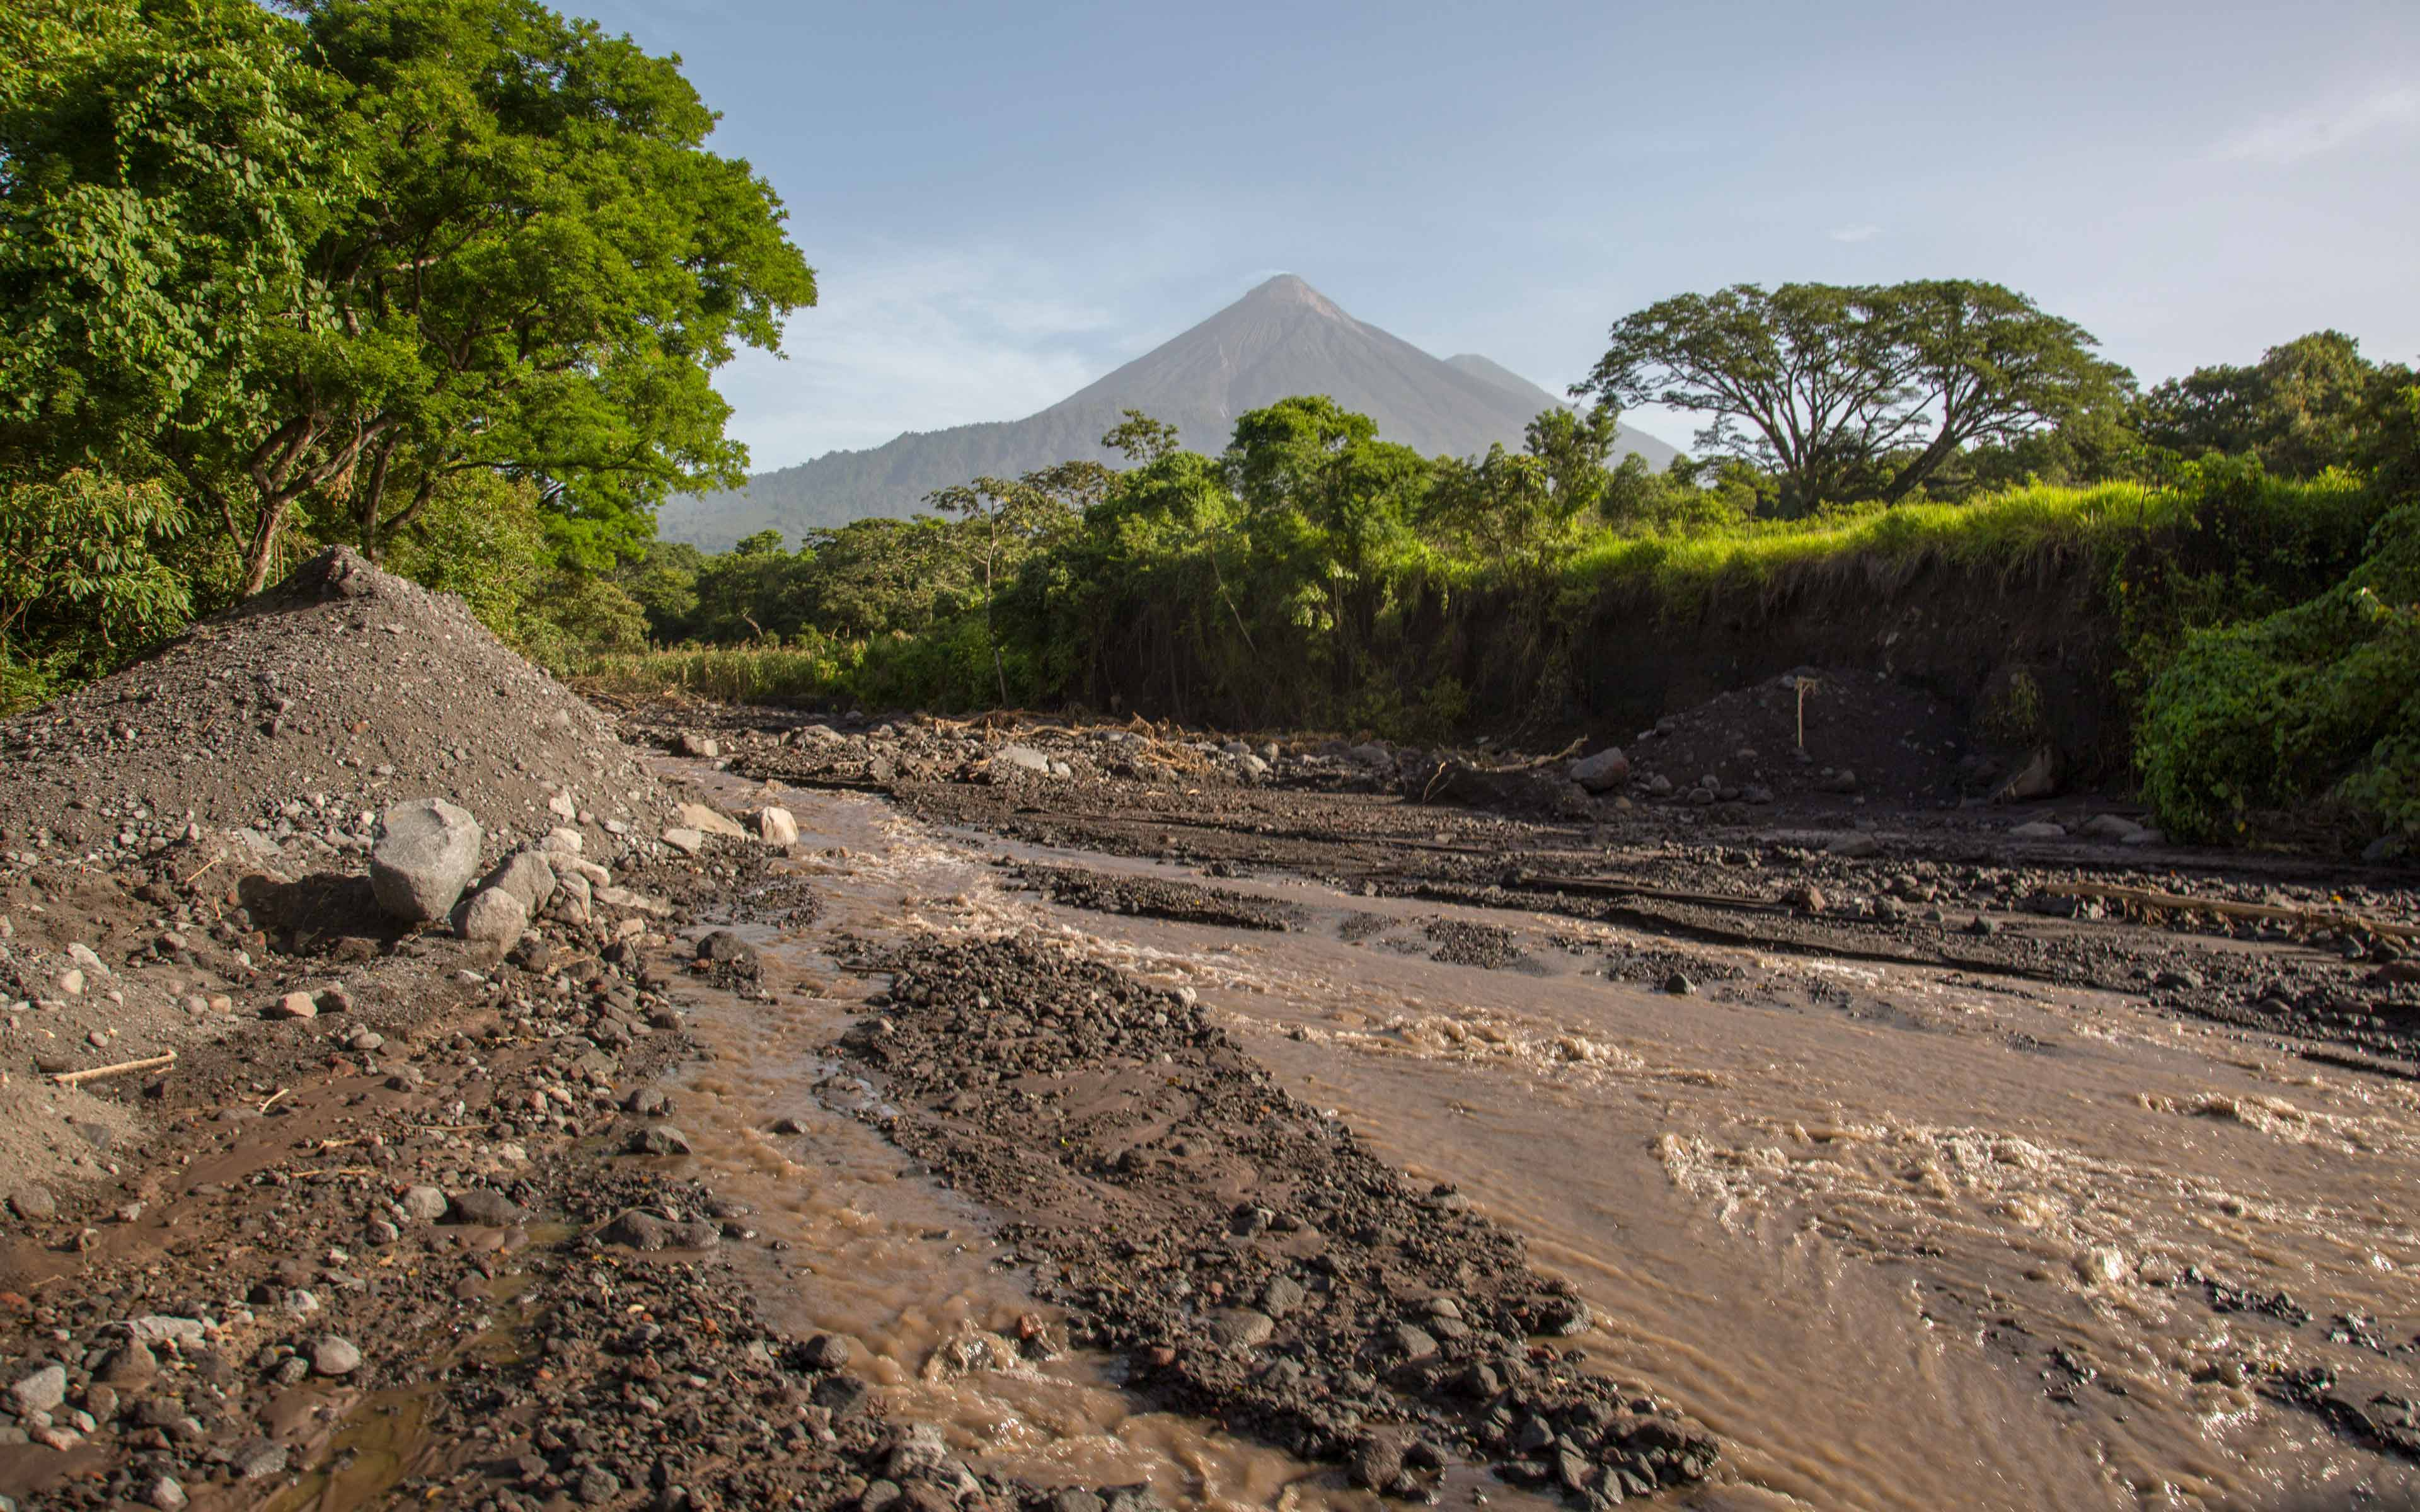 Volcanic ash, rocks, uprooted trees, and other debris has collected in streams and small rivers like this one near the community of La Trinidad on the southern slope. Officials now worry that this unstable material will wash down the mountain and destroy villages if it rains heavily, as it normally does in the summer months.